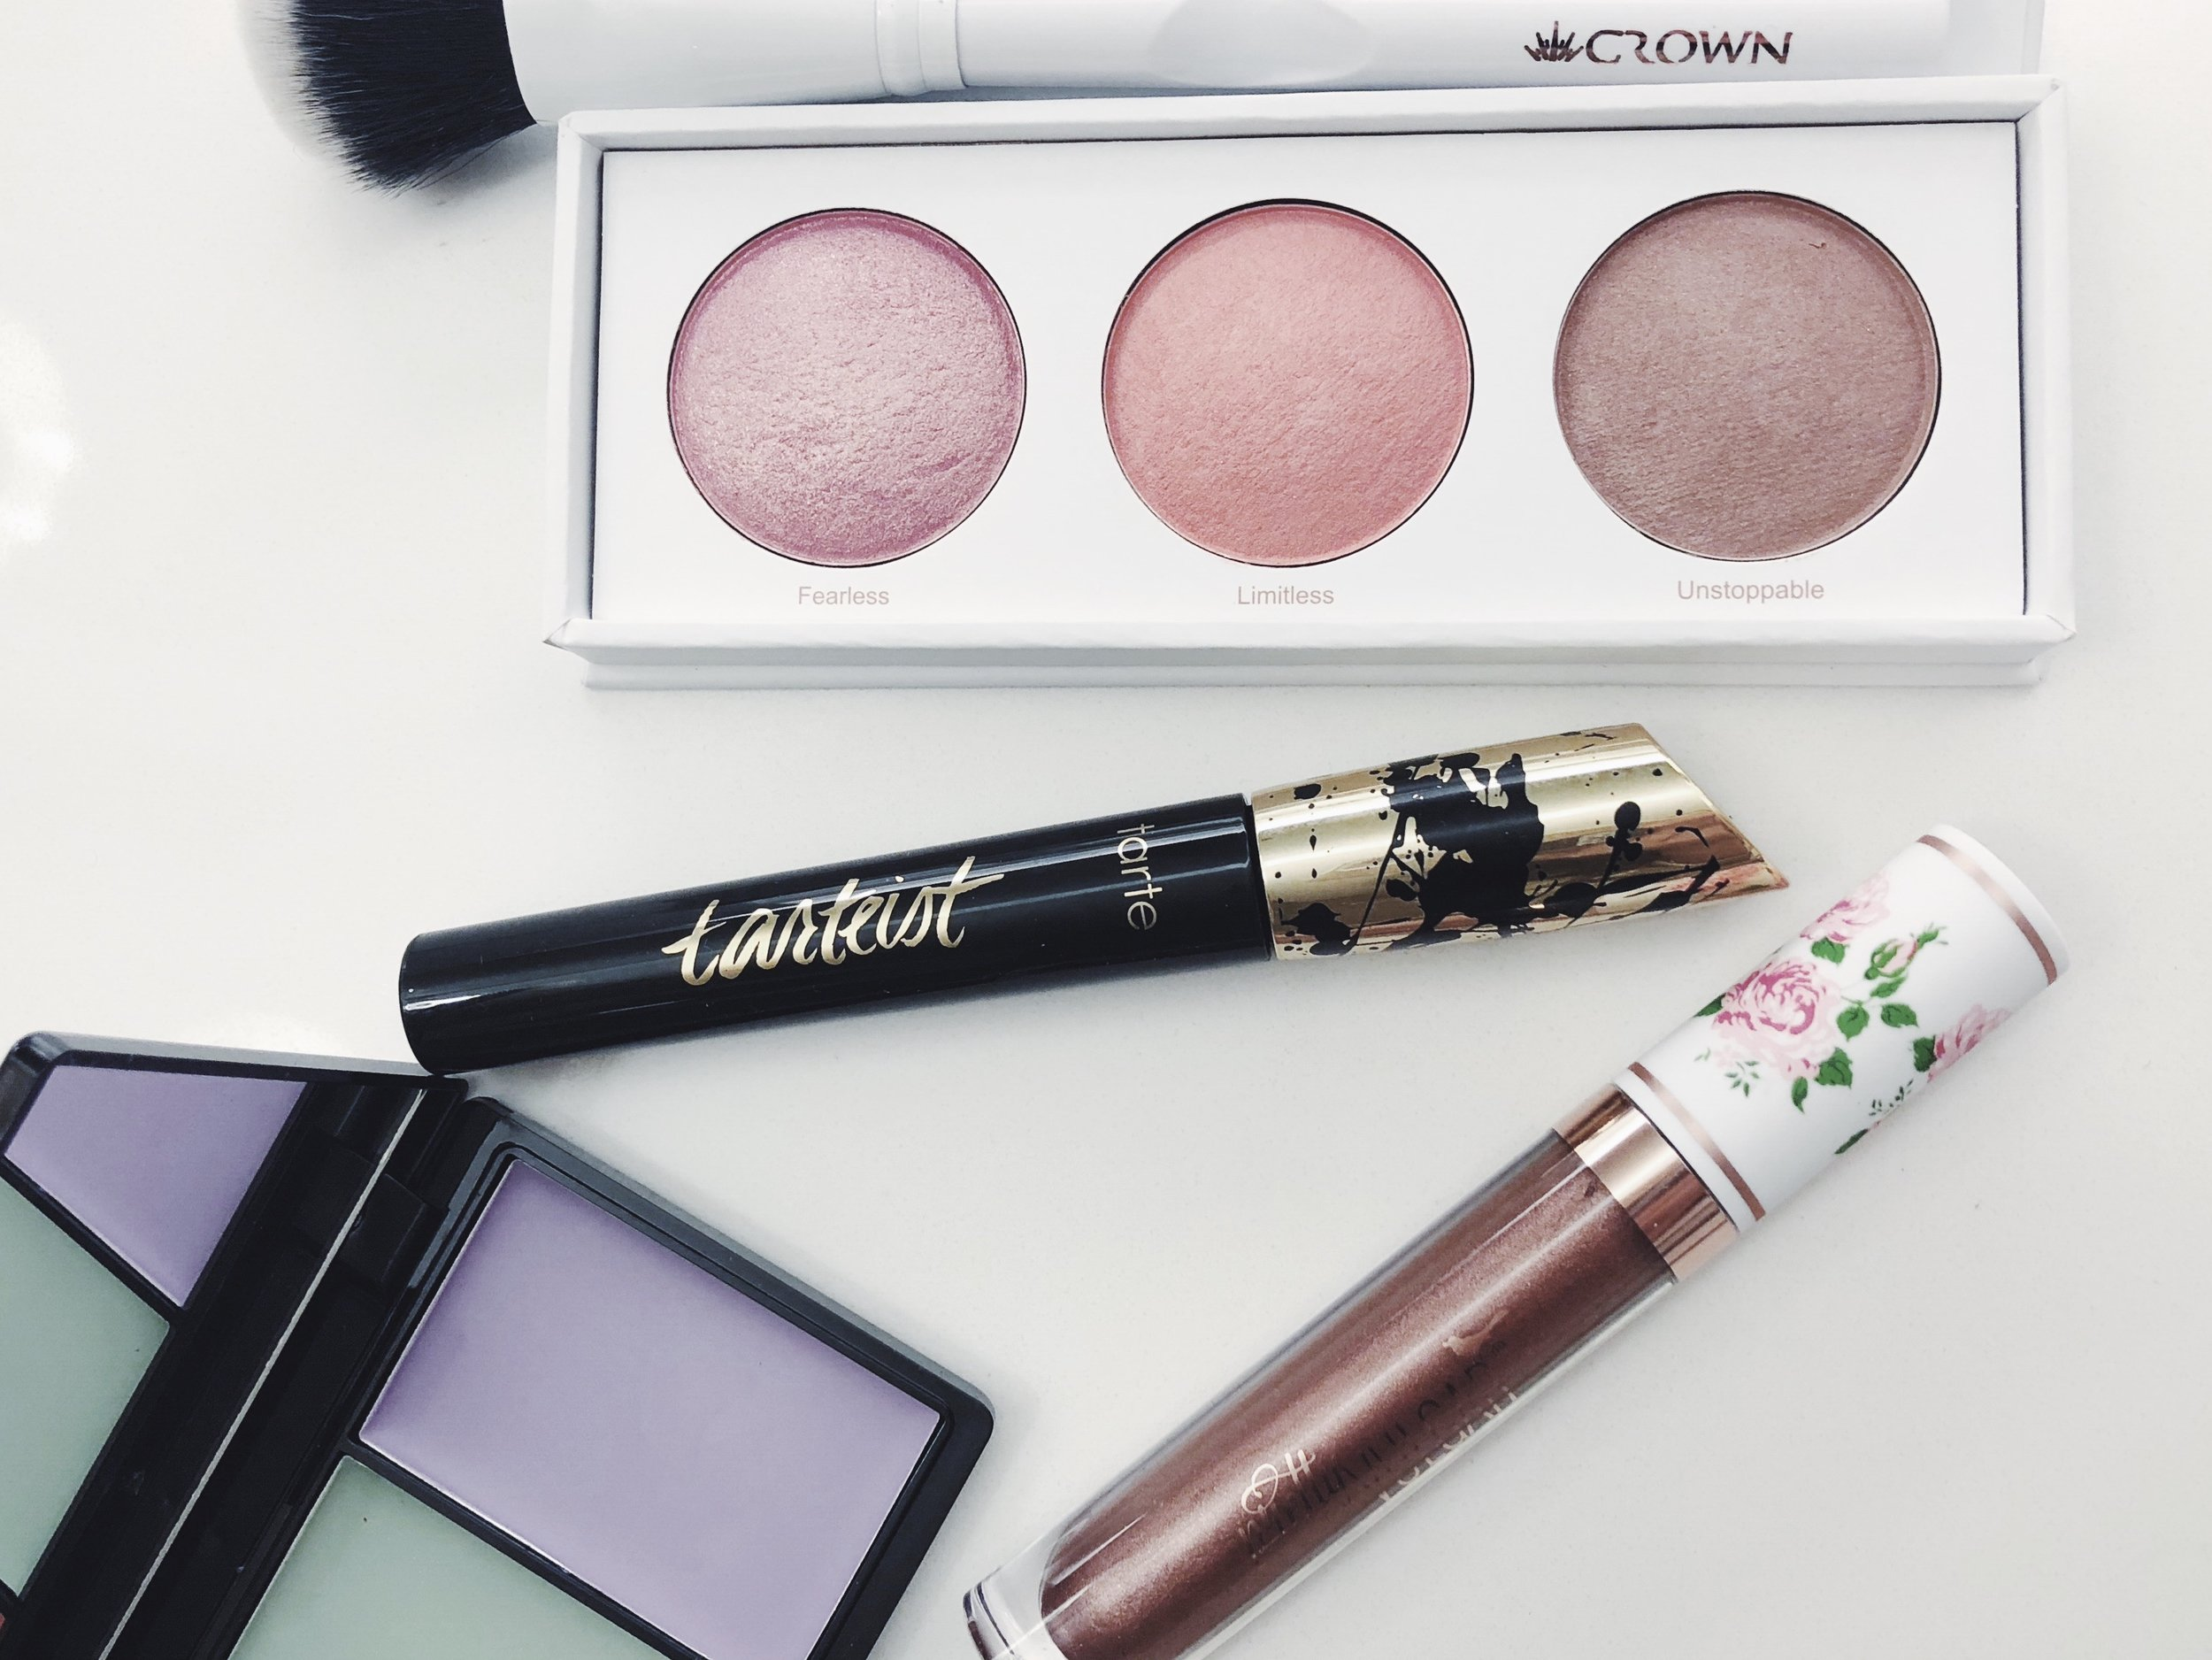 And they have Tarte too! And look a concealer and blush palette! All you need for the holidays!